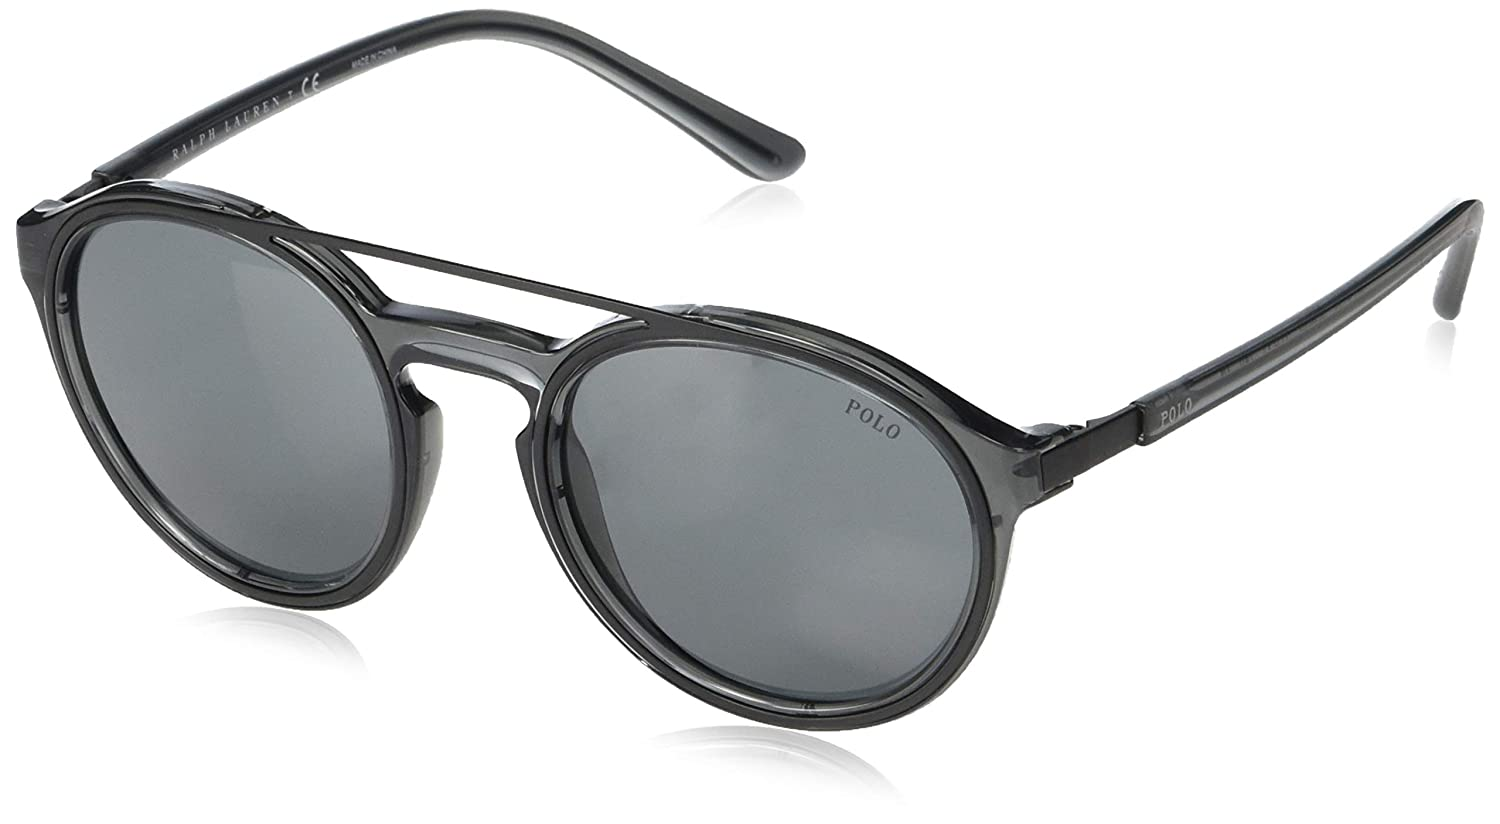 Amazon.com: Gafas de sol Polo PH 4139 569687, color gris ...